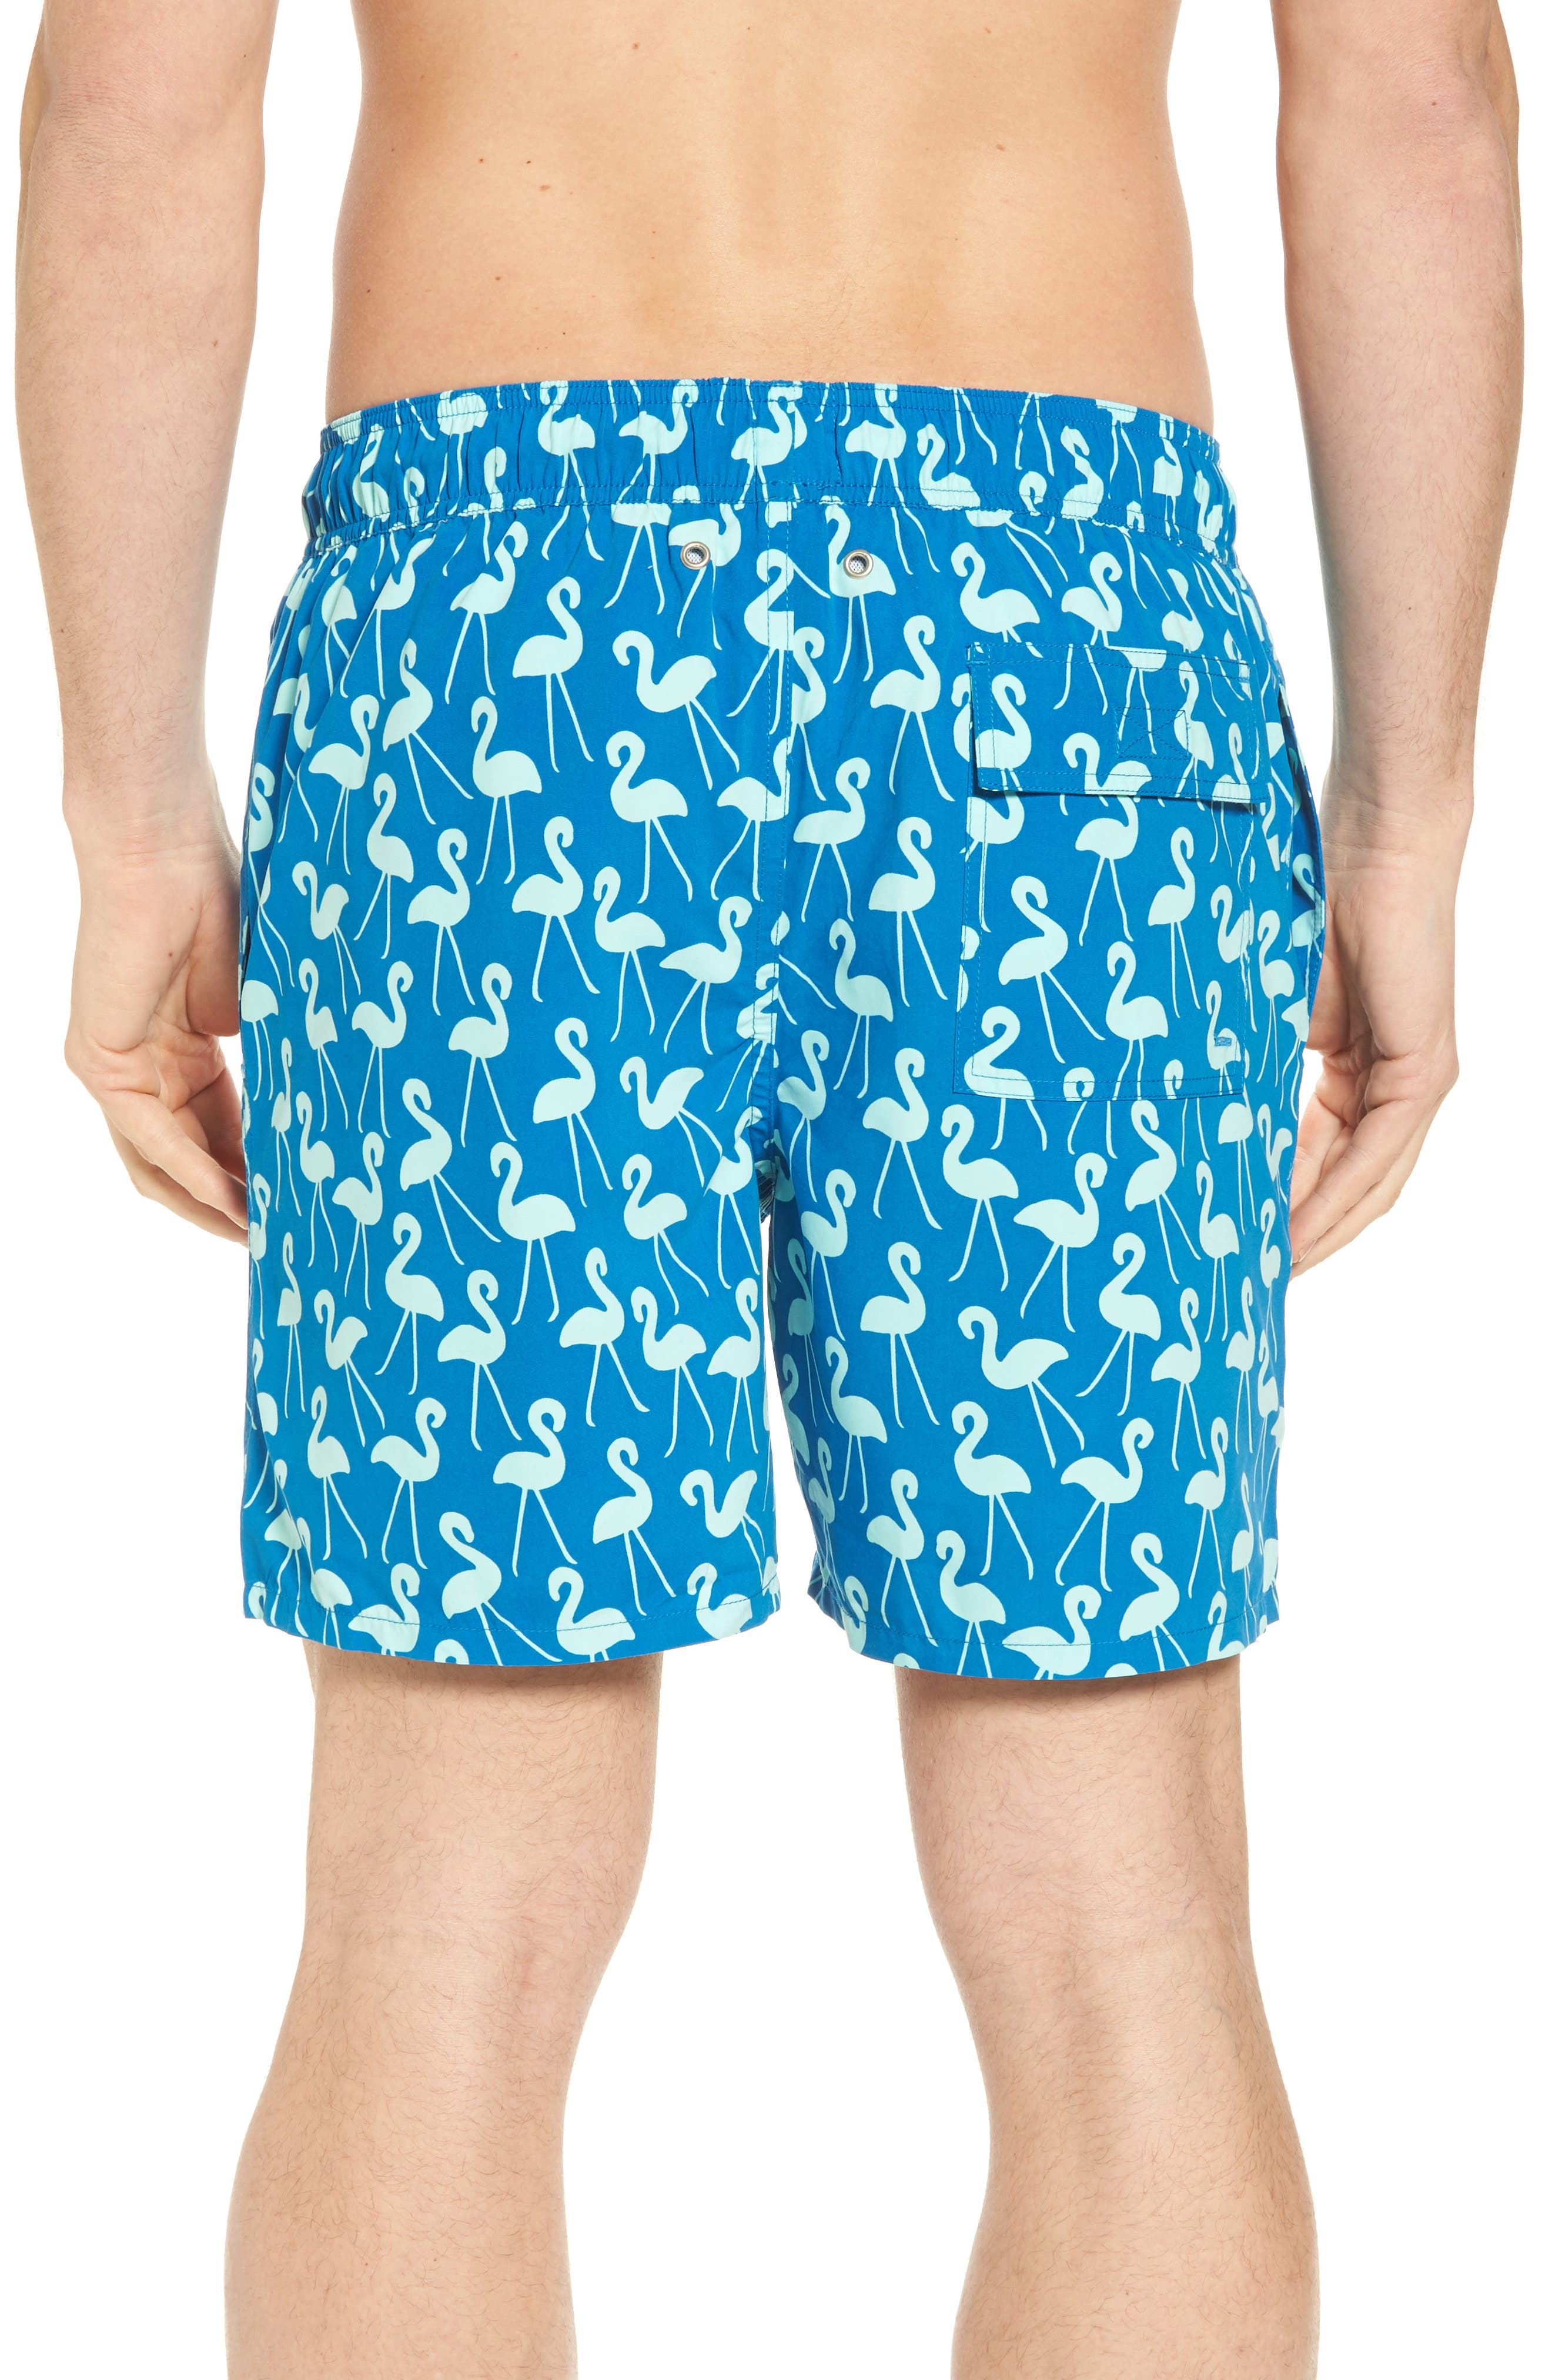 Flamingo Print Swim Trunks,                             Alternate thumbnail 2, color,                             Sky Blue